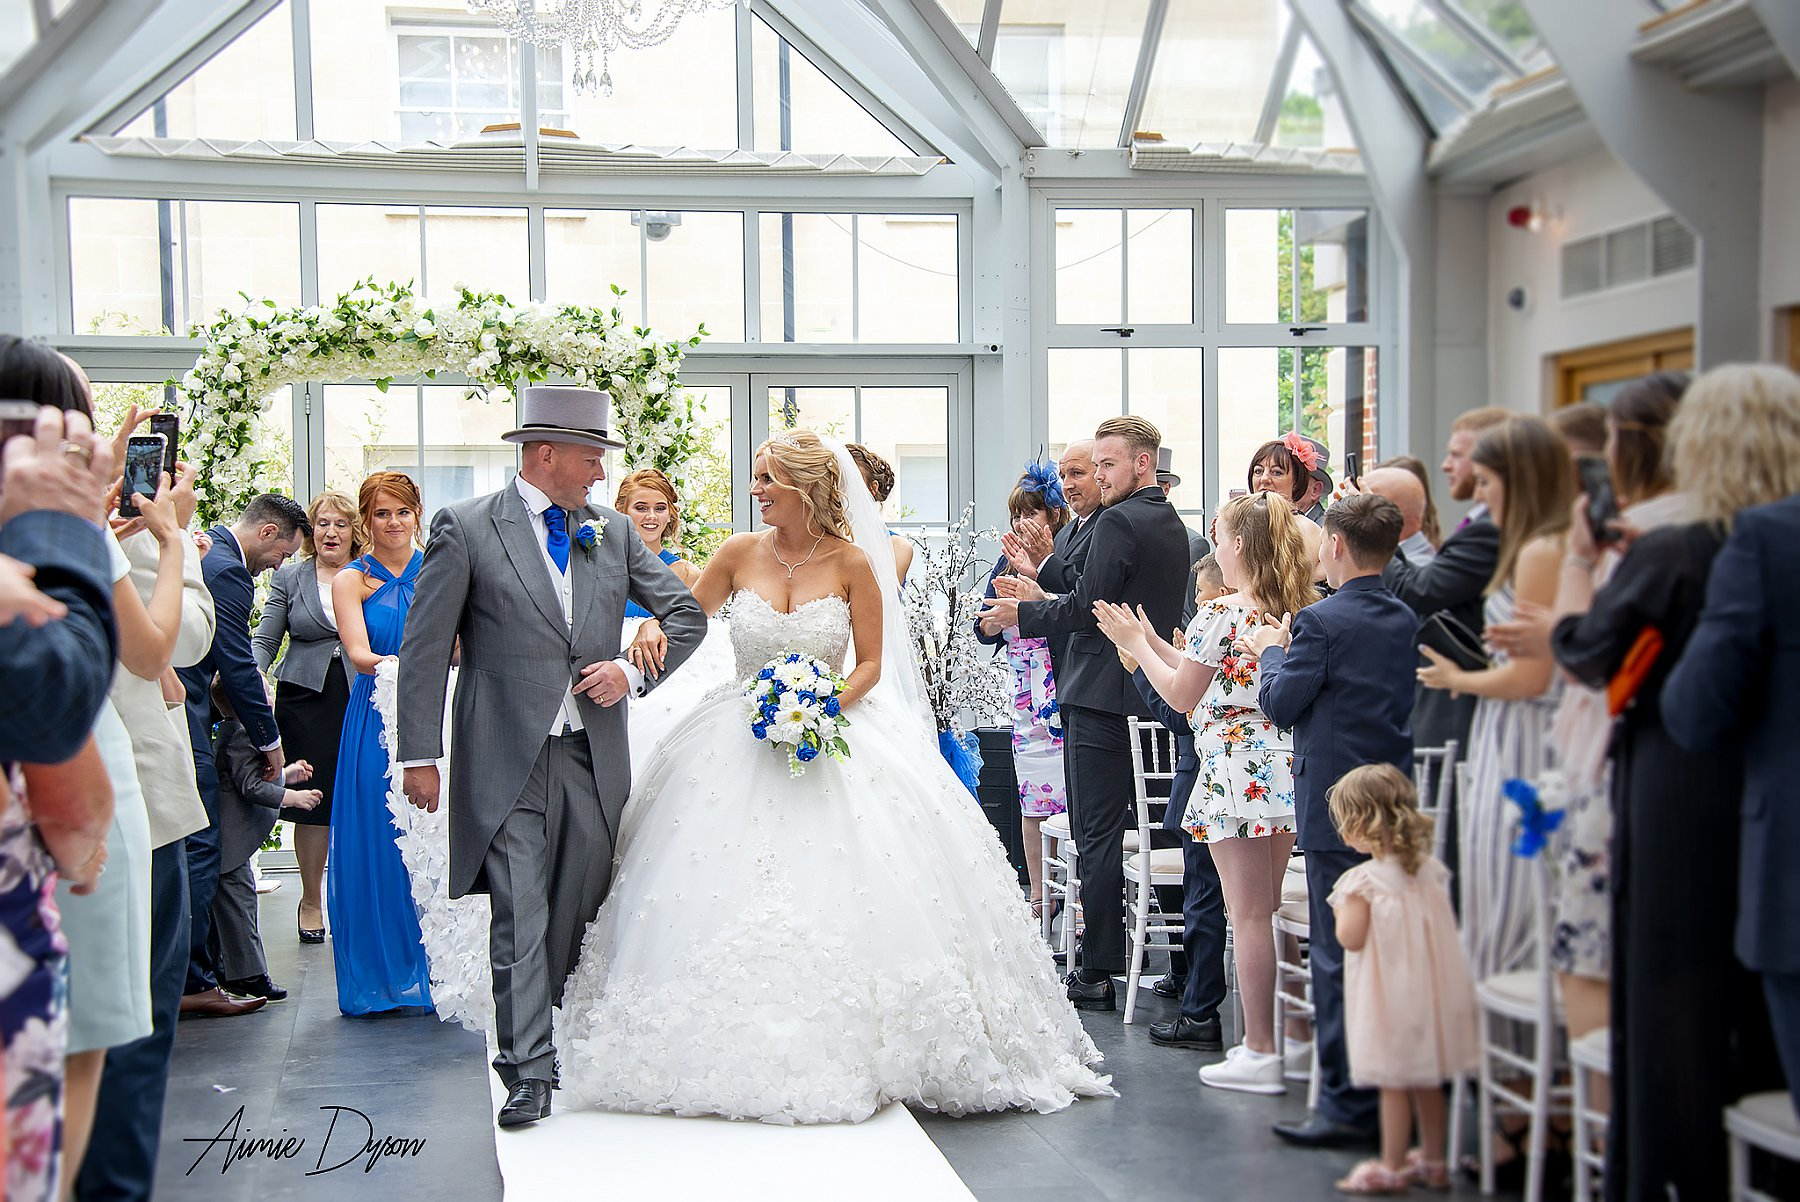 Full days photography with a Free Video of Ceremony and Speeches